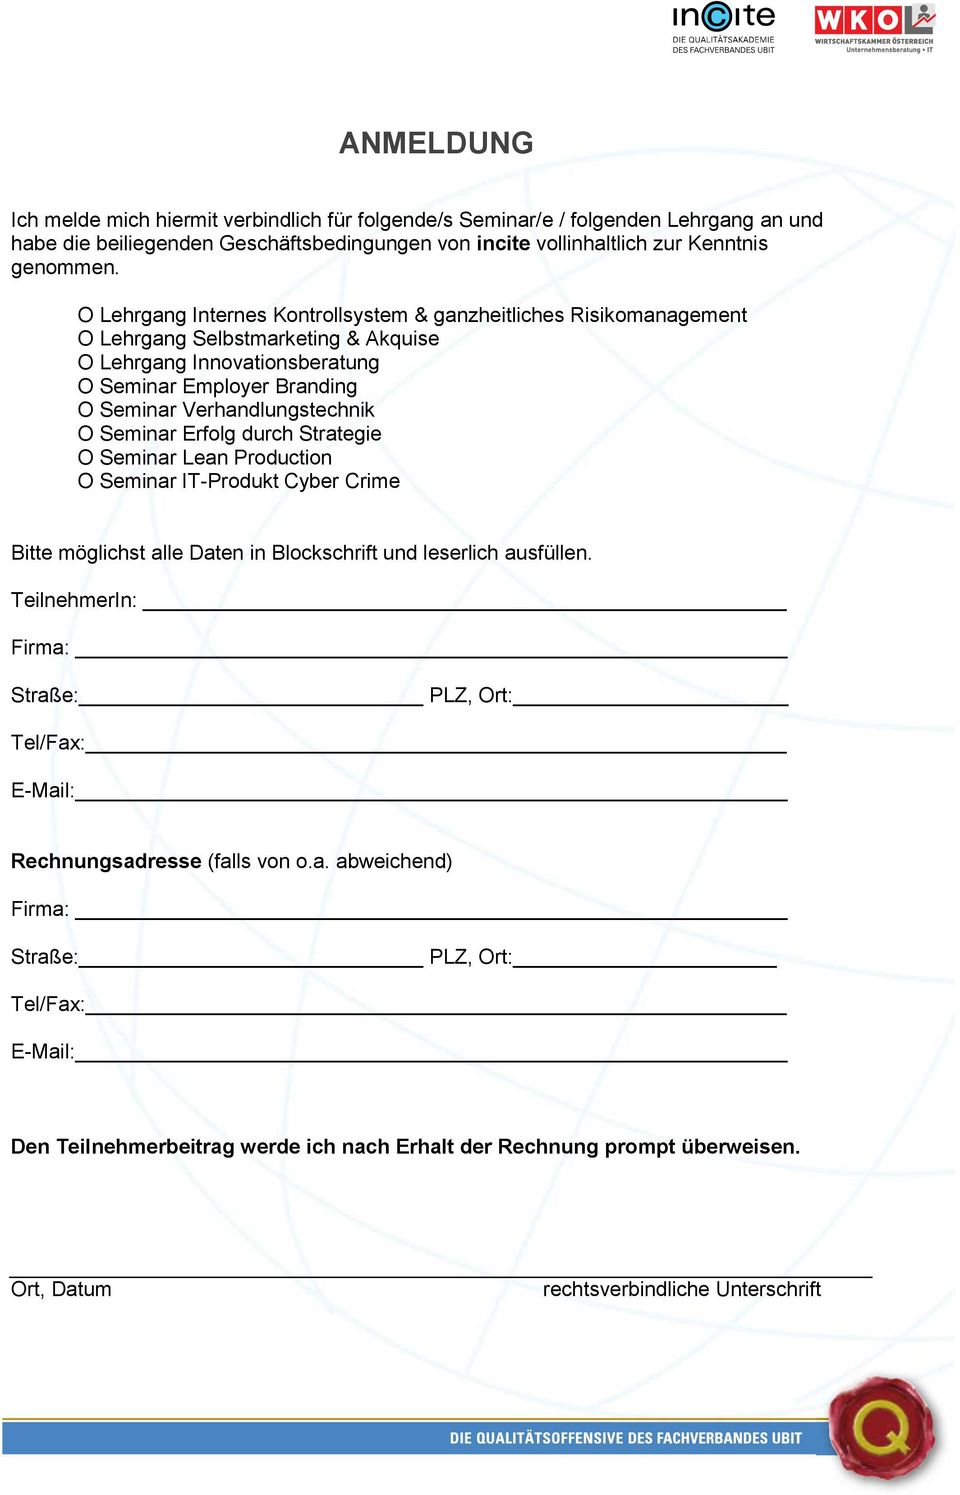 Seminar Erfolg durch Strategie O Seminar Lean Production O Seminar IT-Produkt Cyber Crime Bitte möglichst alle Daten in Blockschrift und leserlich ausfüllen.